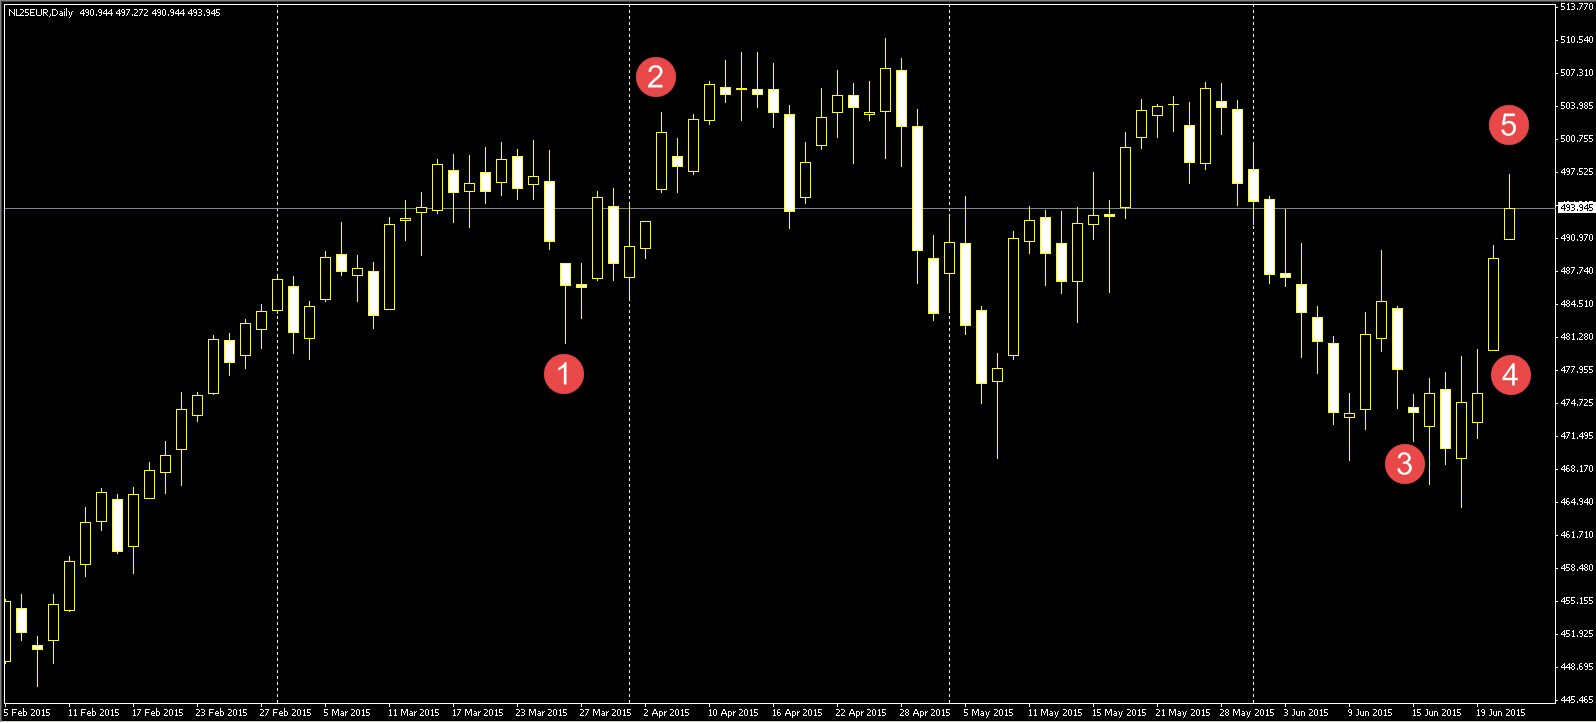 CFD Netherlands 25 candlestick window trading